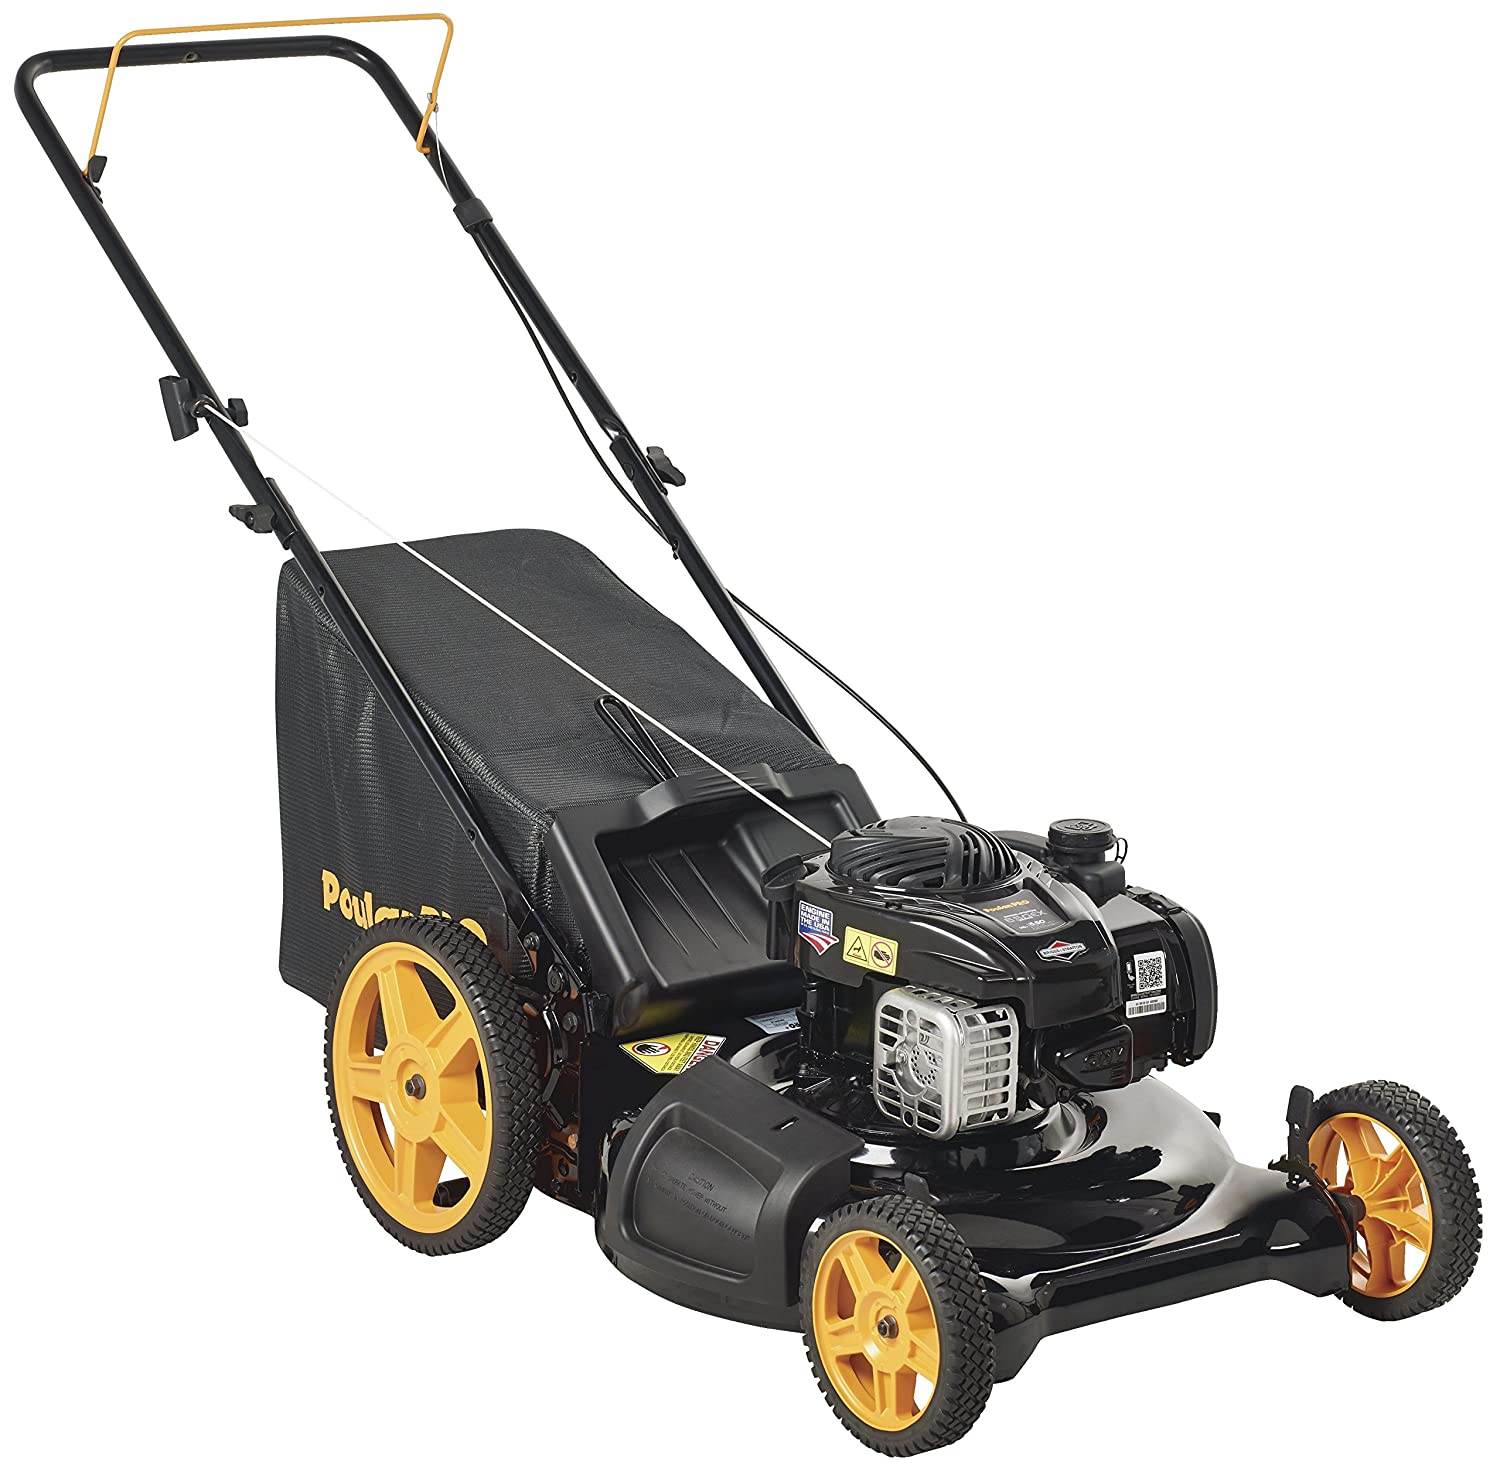 Poulan Pro 961320093 PR550N21RH3 Briggs 550ex Side Discharge/Mulch/Bag 3-in-1 Hi-Wheel Push Mower in 21-Inch Deck